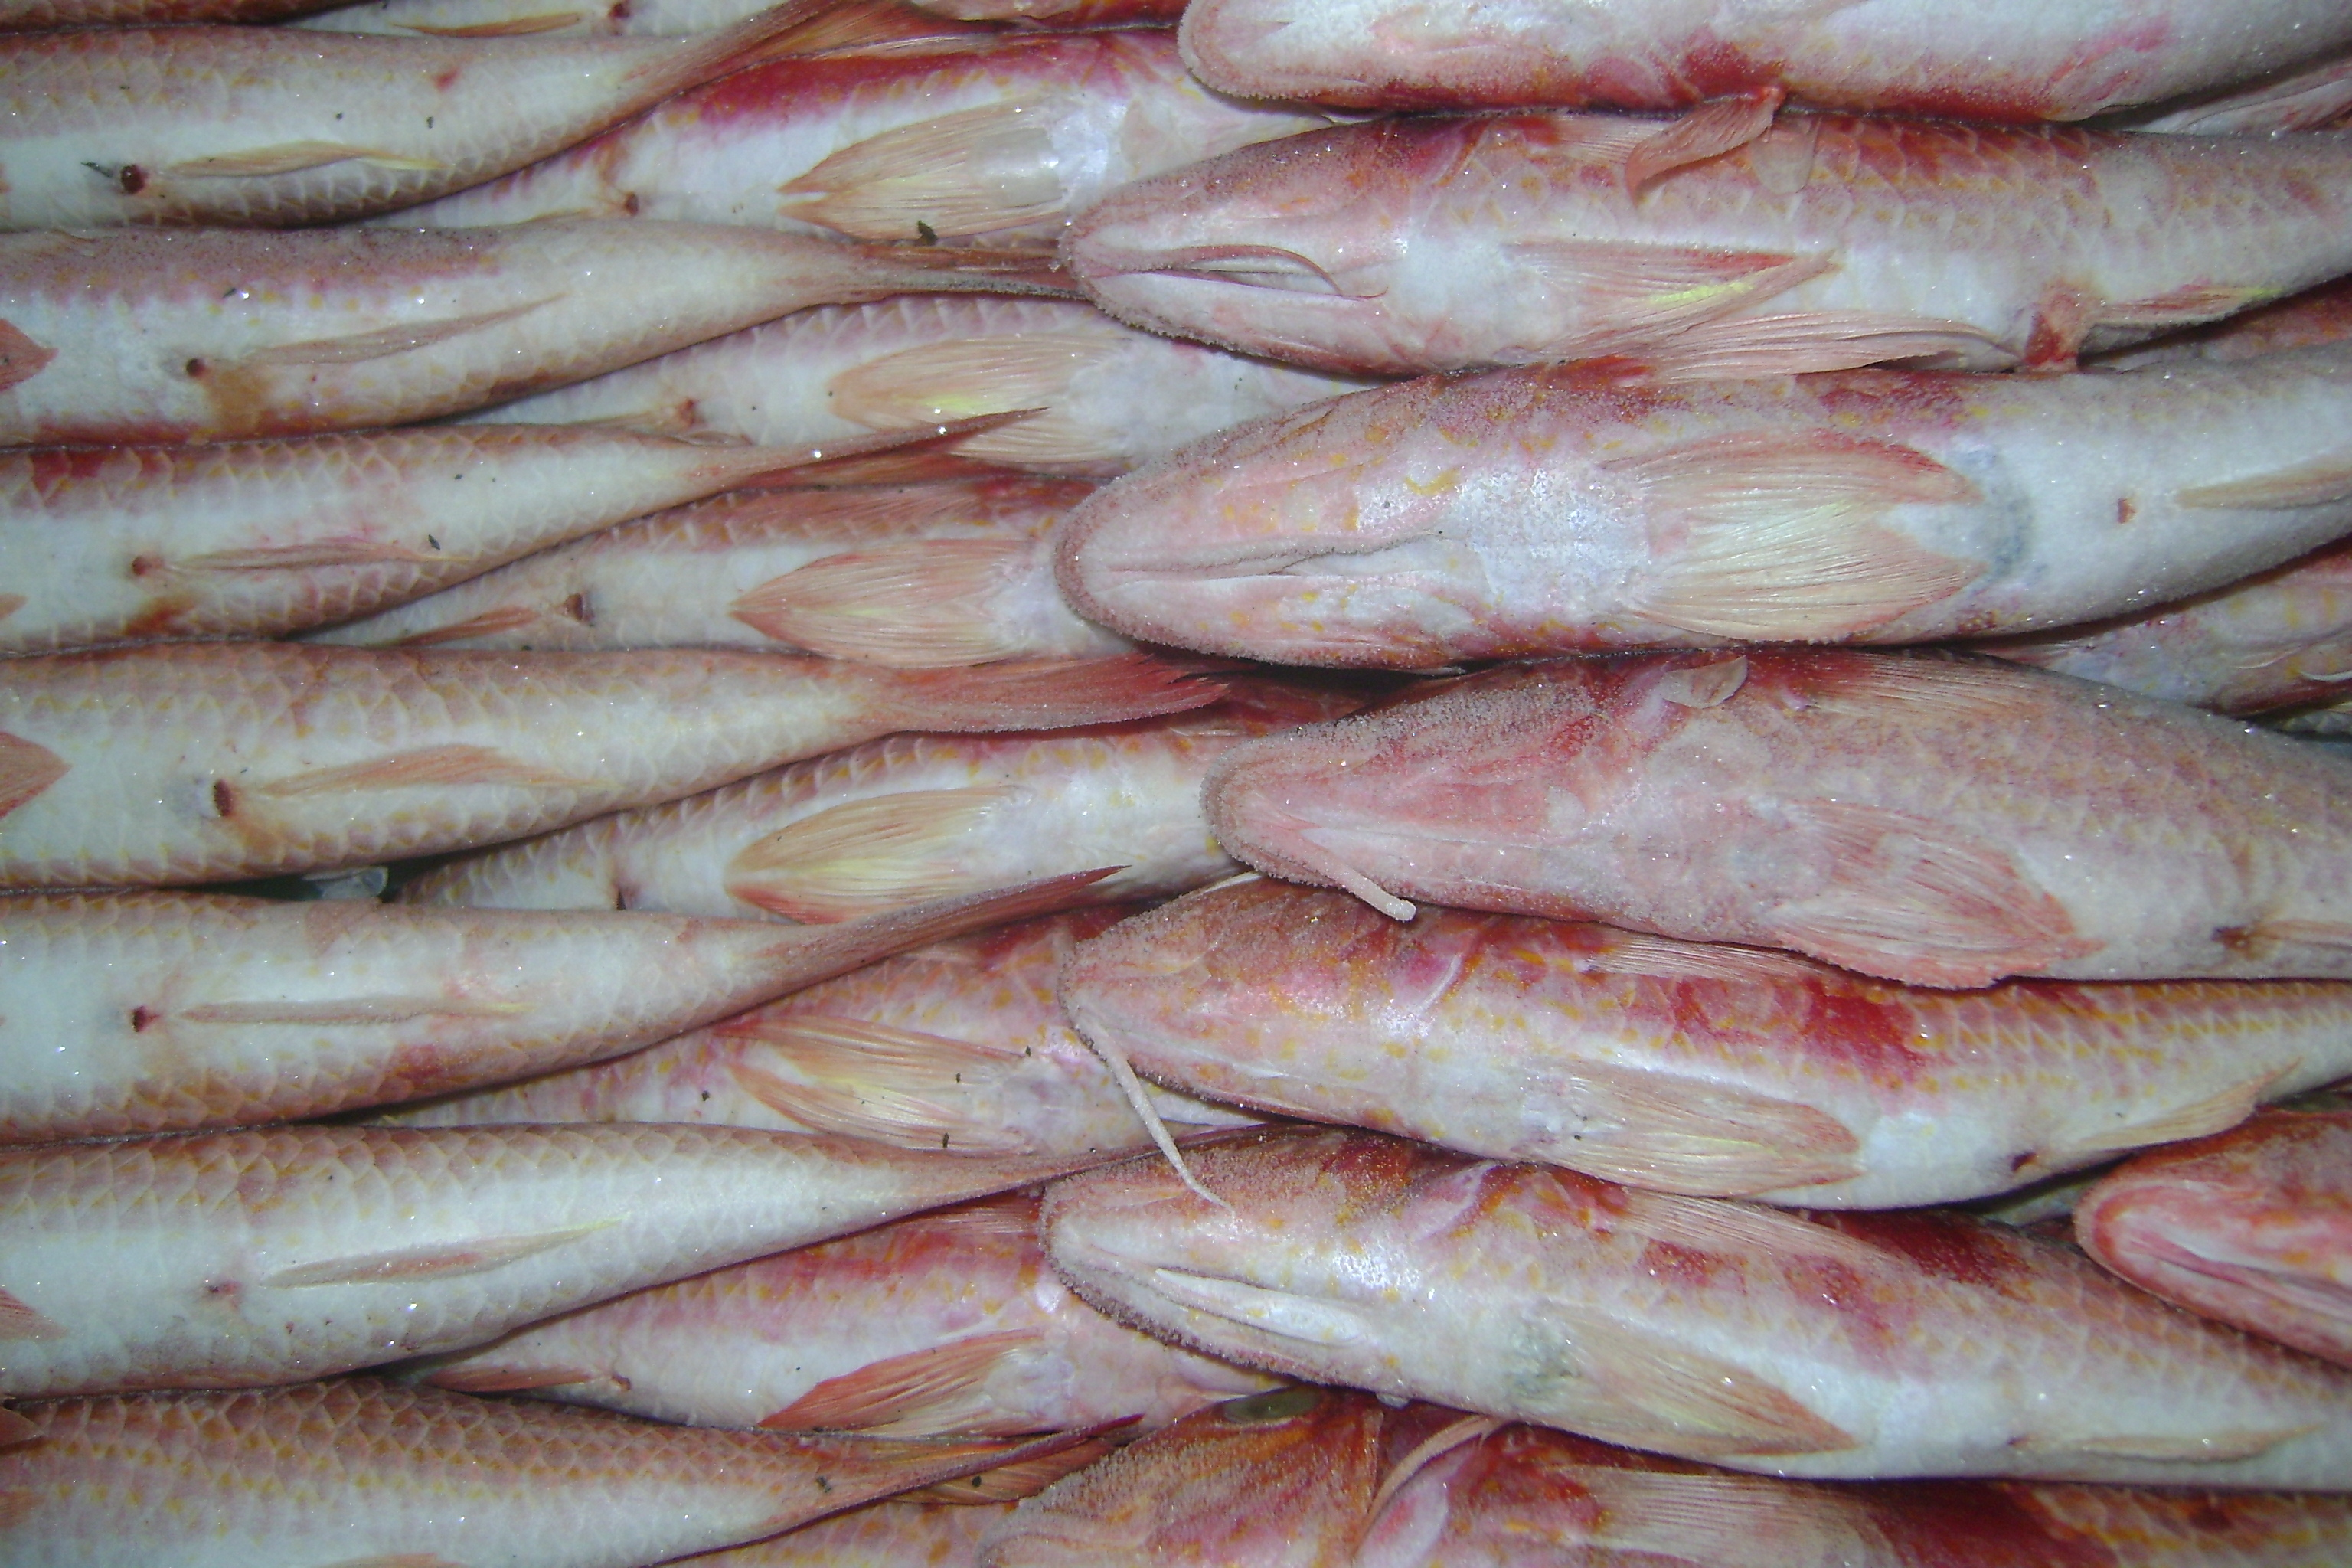 Frozen goatfish seafoods and fish products skmrr fsbra for How to freeze fish